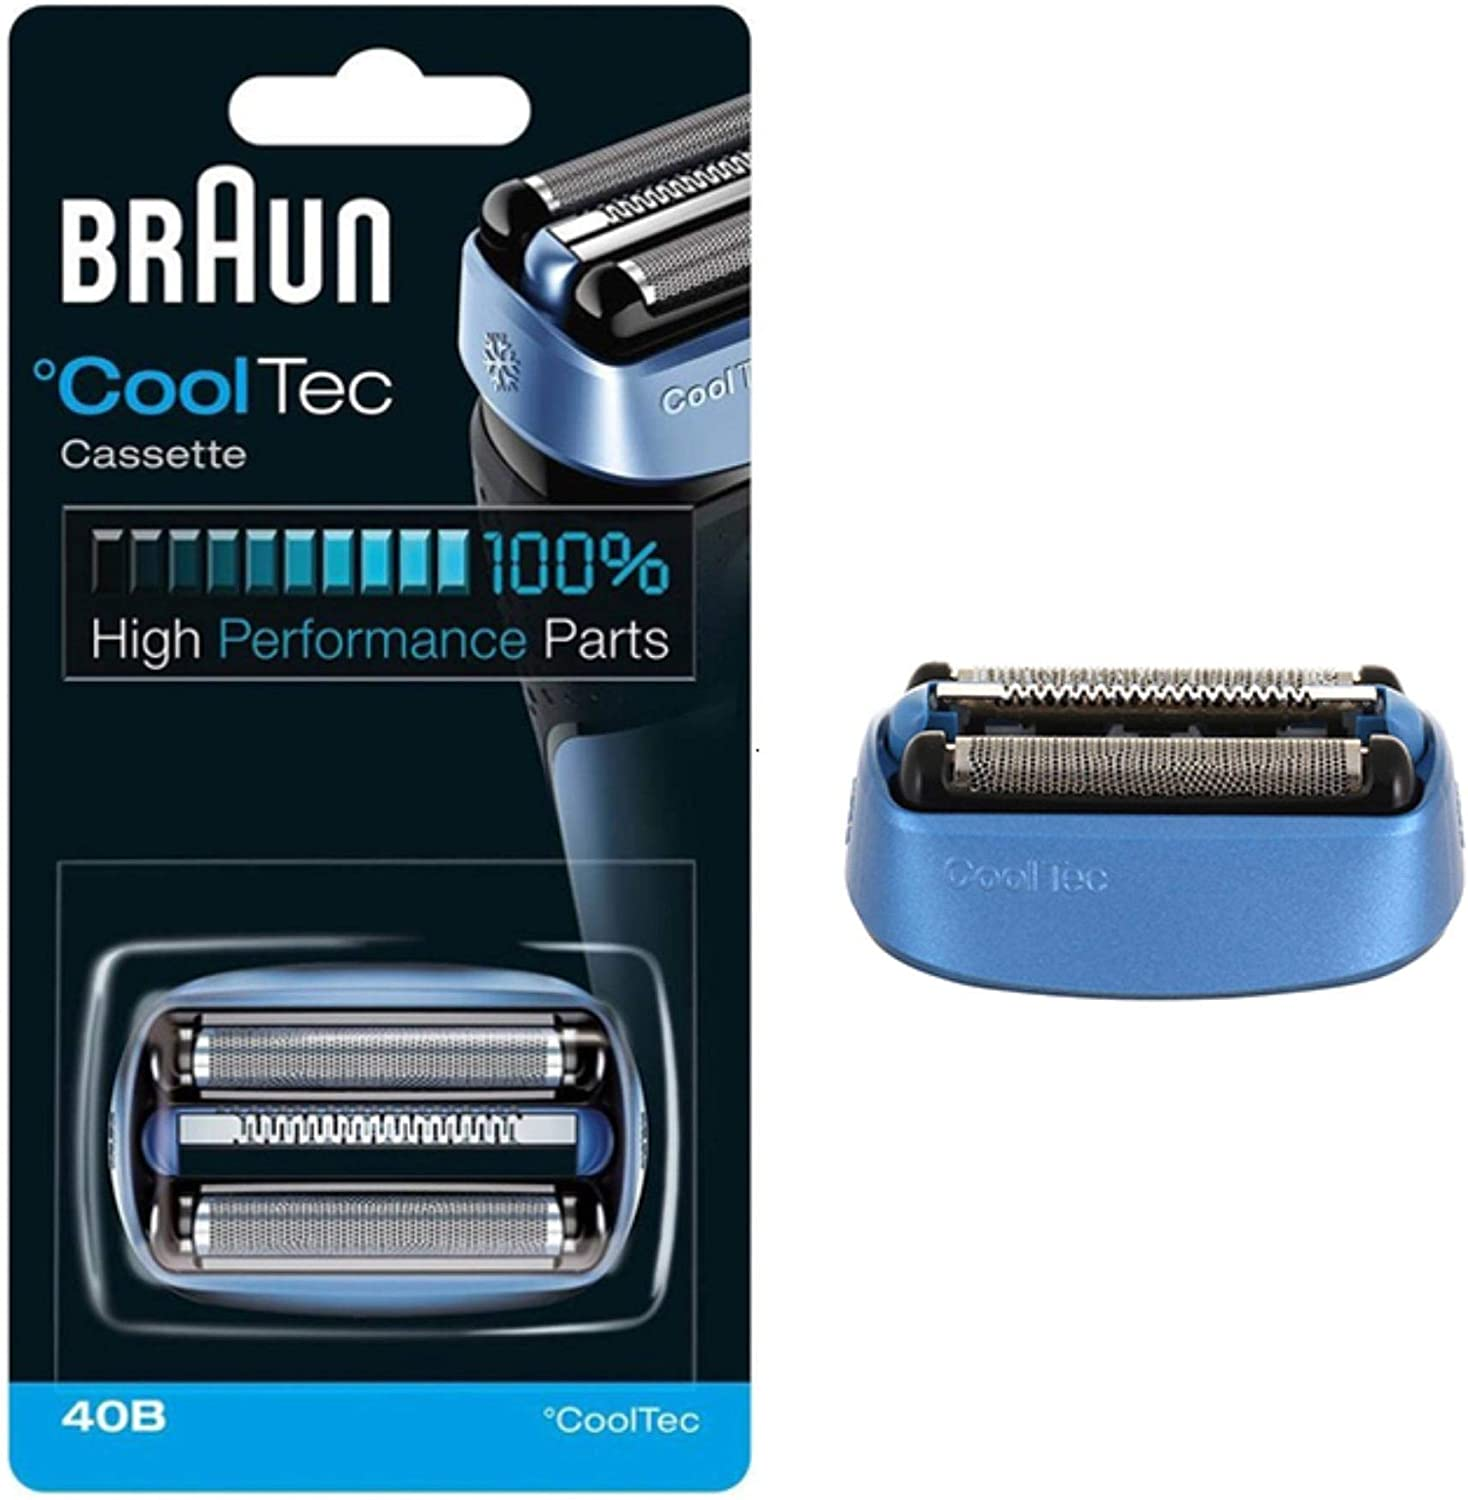 Braun 40B Foil and Cutter Replacement Cartridge for CoolTec ...